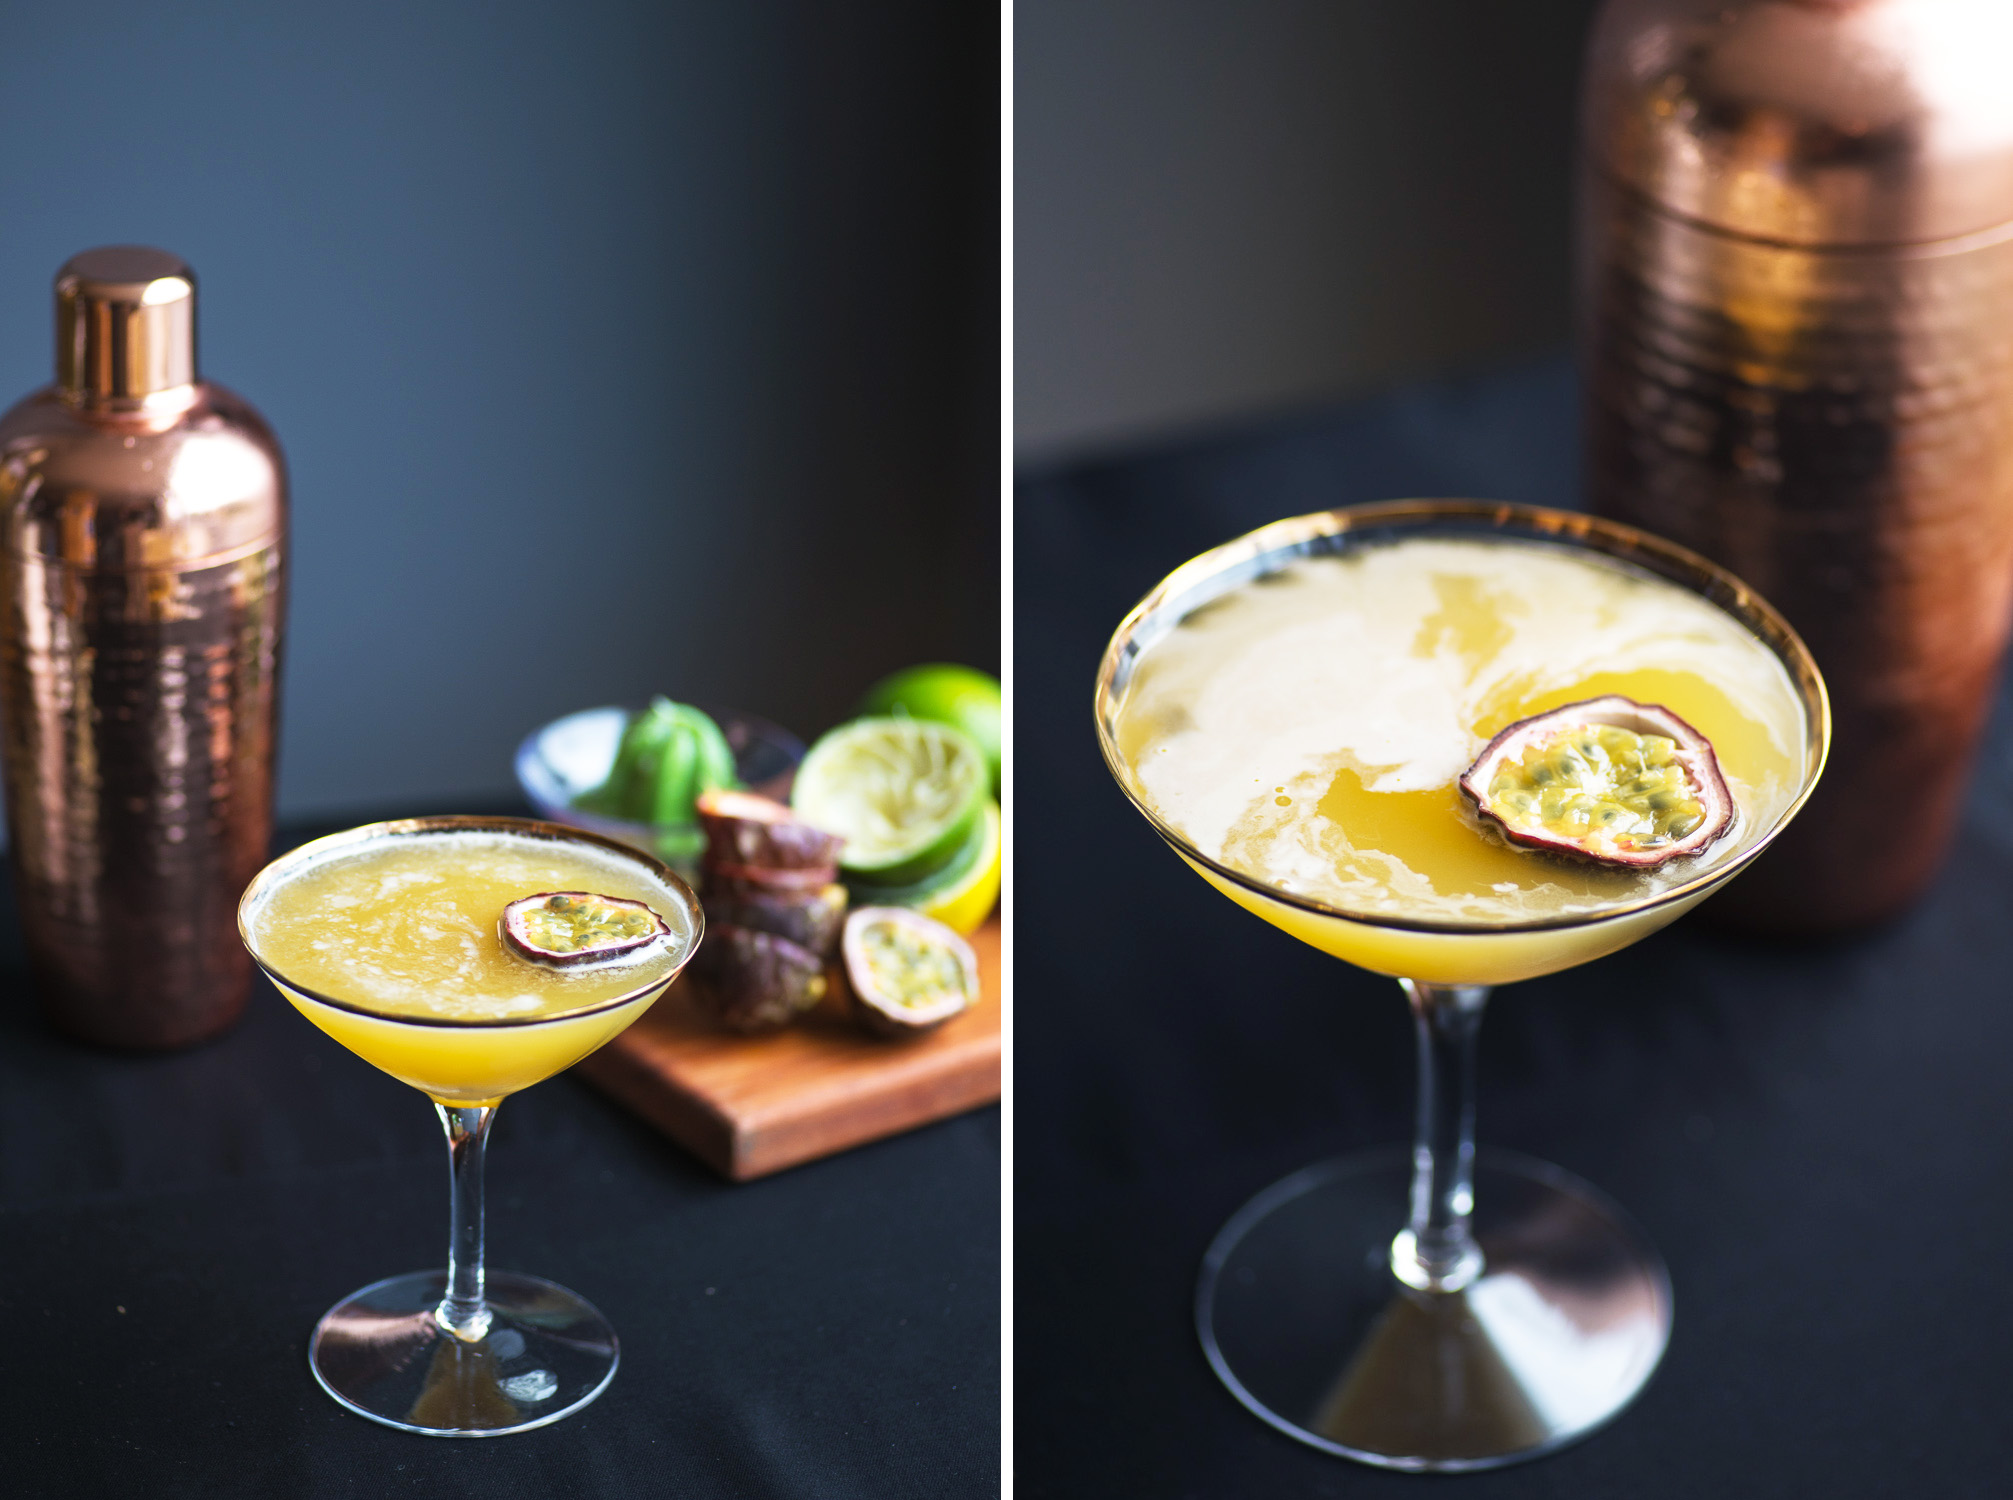 Fruit splash classic - To Help Me Style This Recipe House Of Fraser Kindly Sent Me These Beautiful Casa Couture Copper Cocktail Shaker And Biba Gold Rimmed Glass